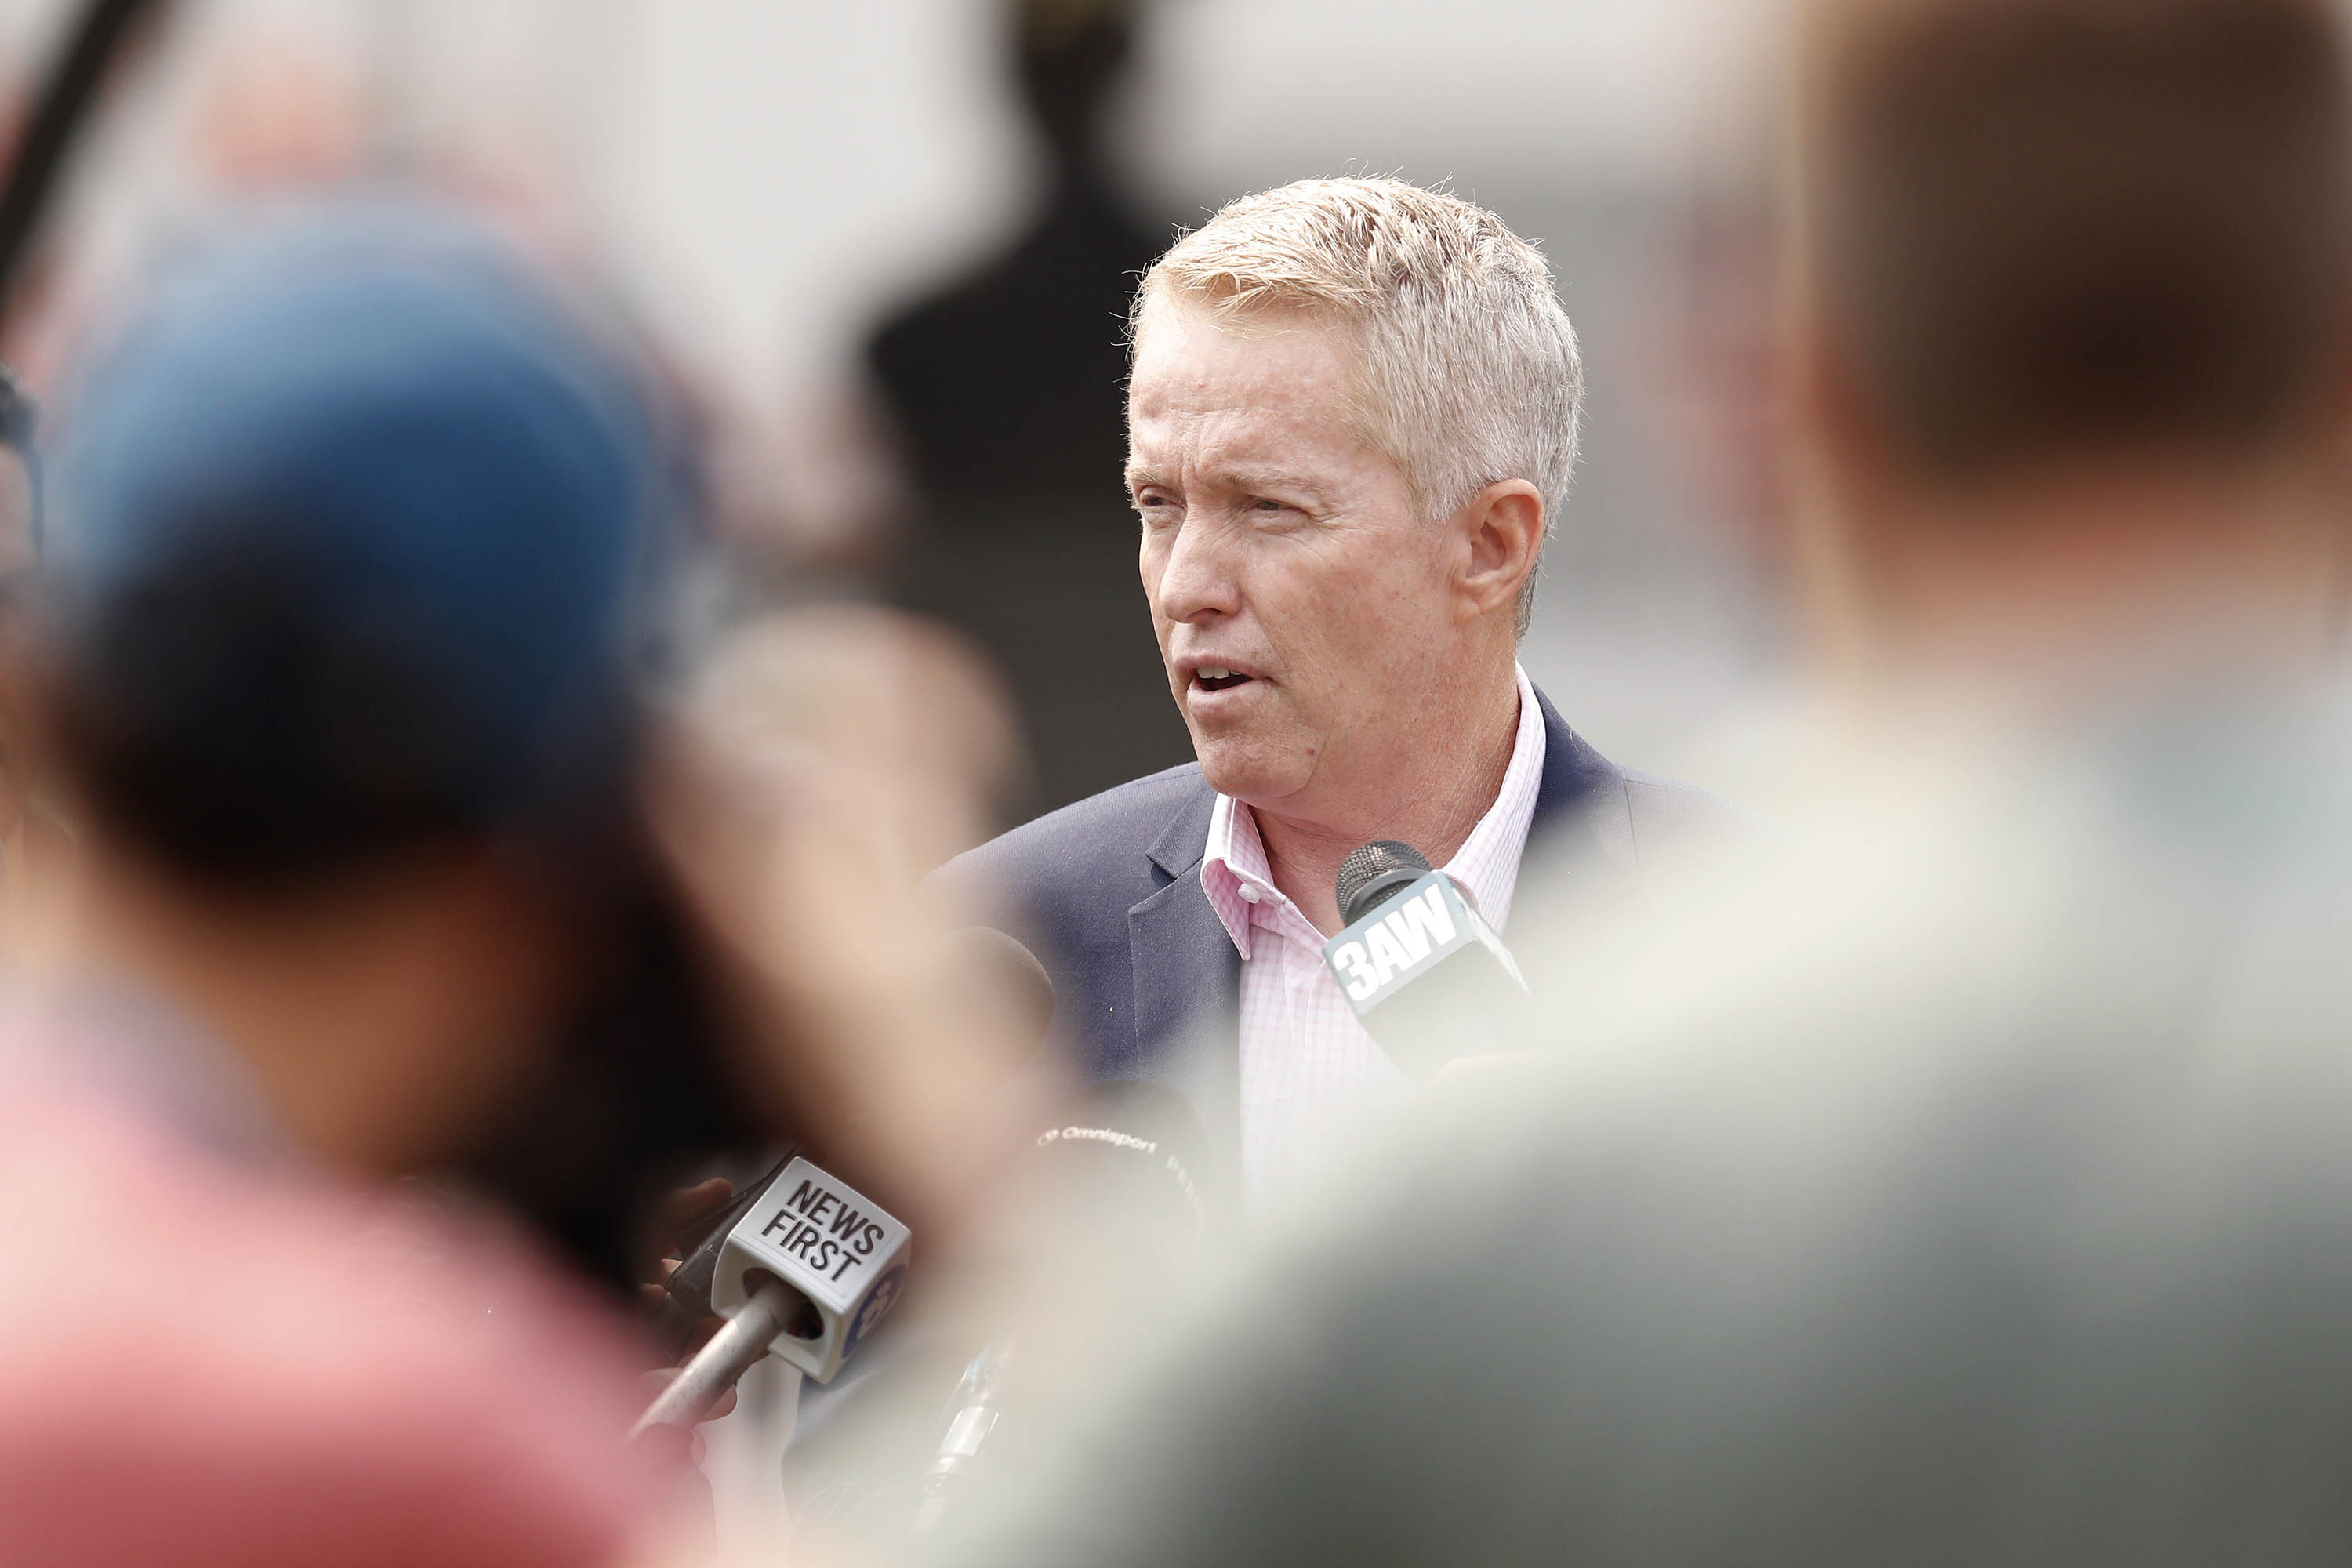 Australian Open Tournament Director Craig Tiley is pictured speaking to the media in January 2020, in Melbourne, Australia.